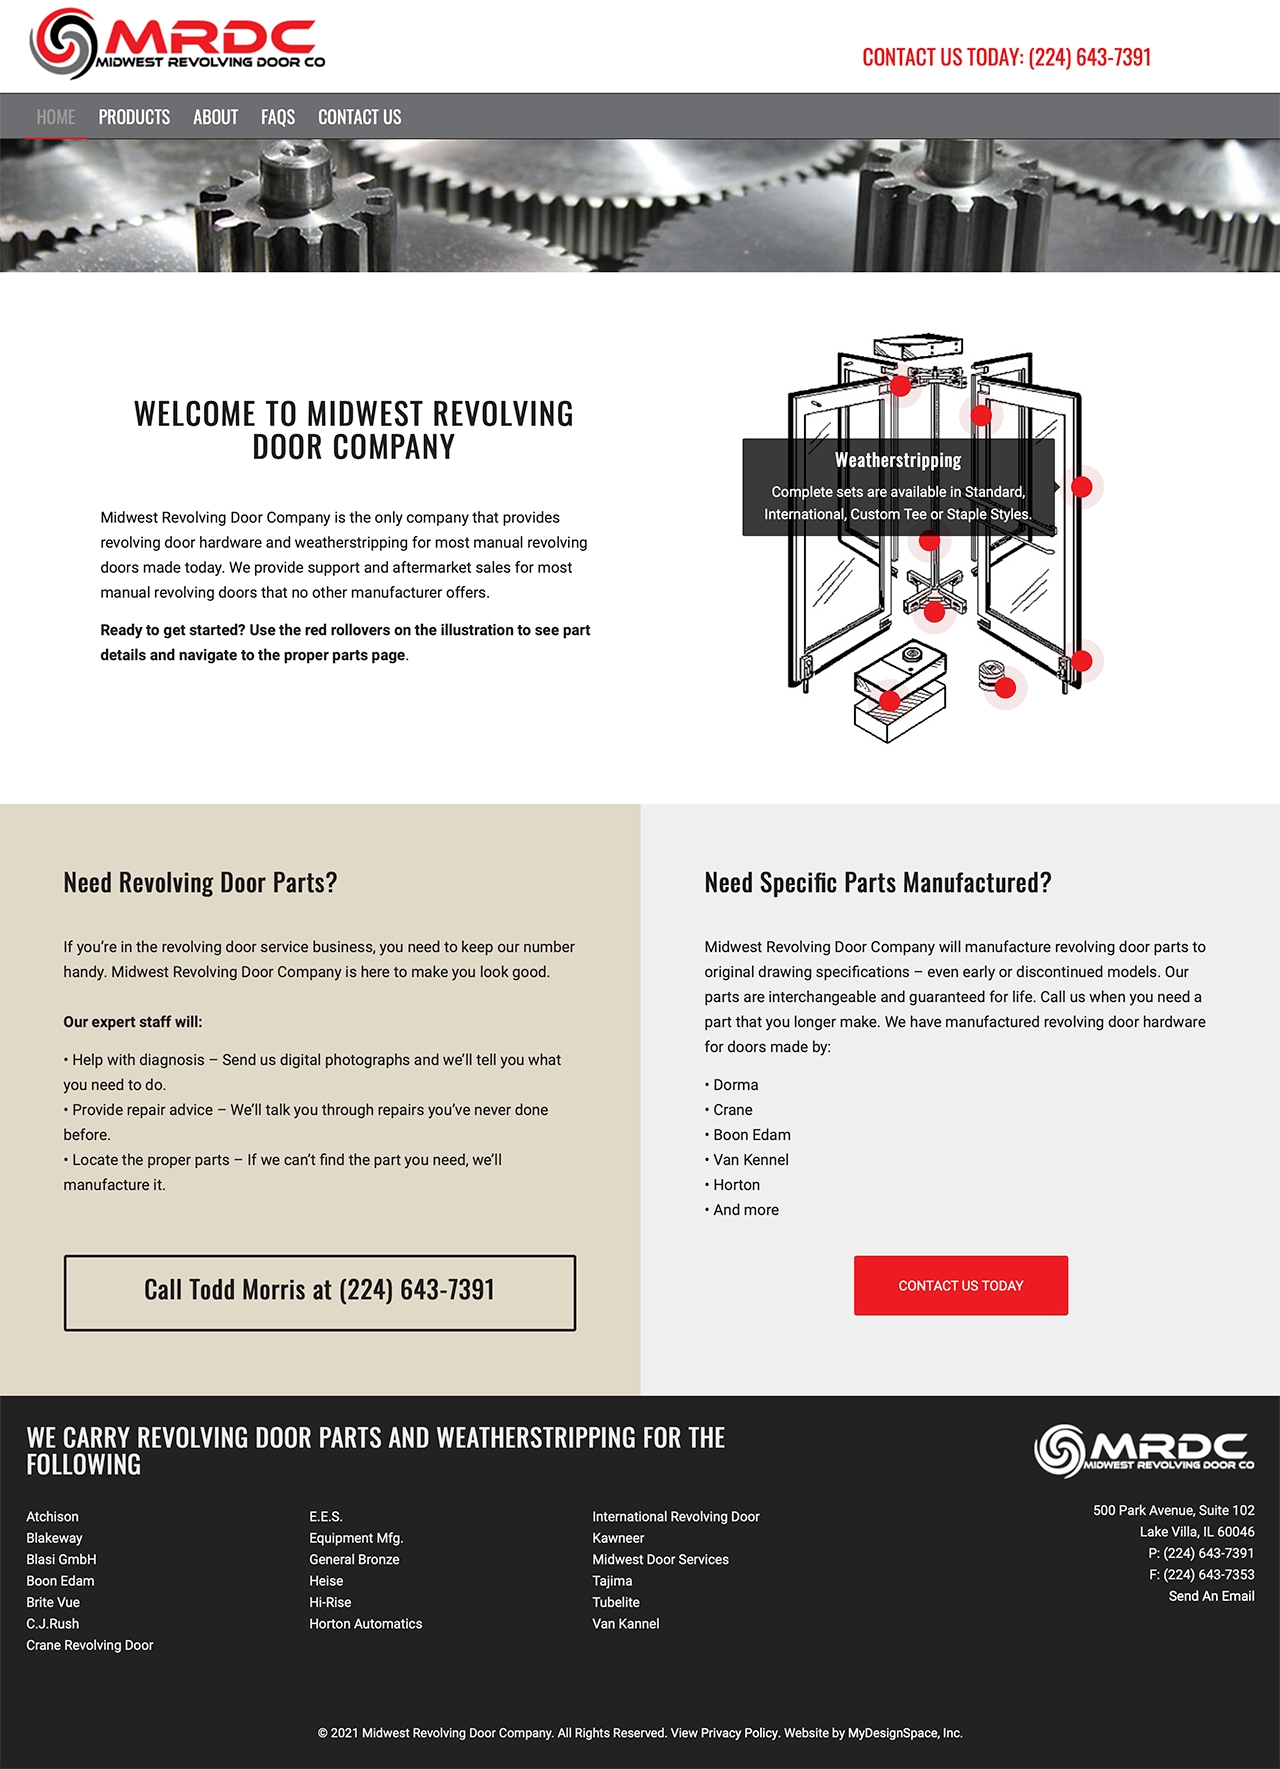 Midwest Revolving Door Company Home Page